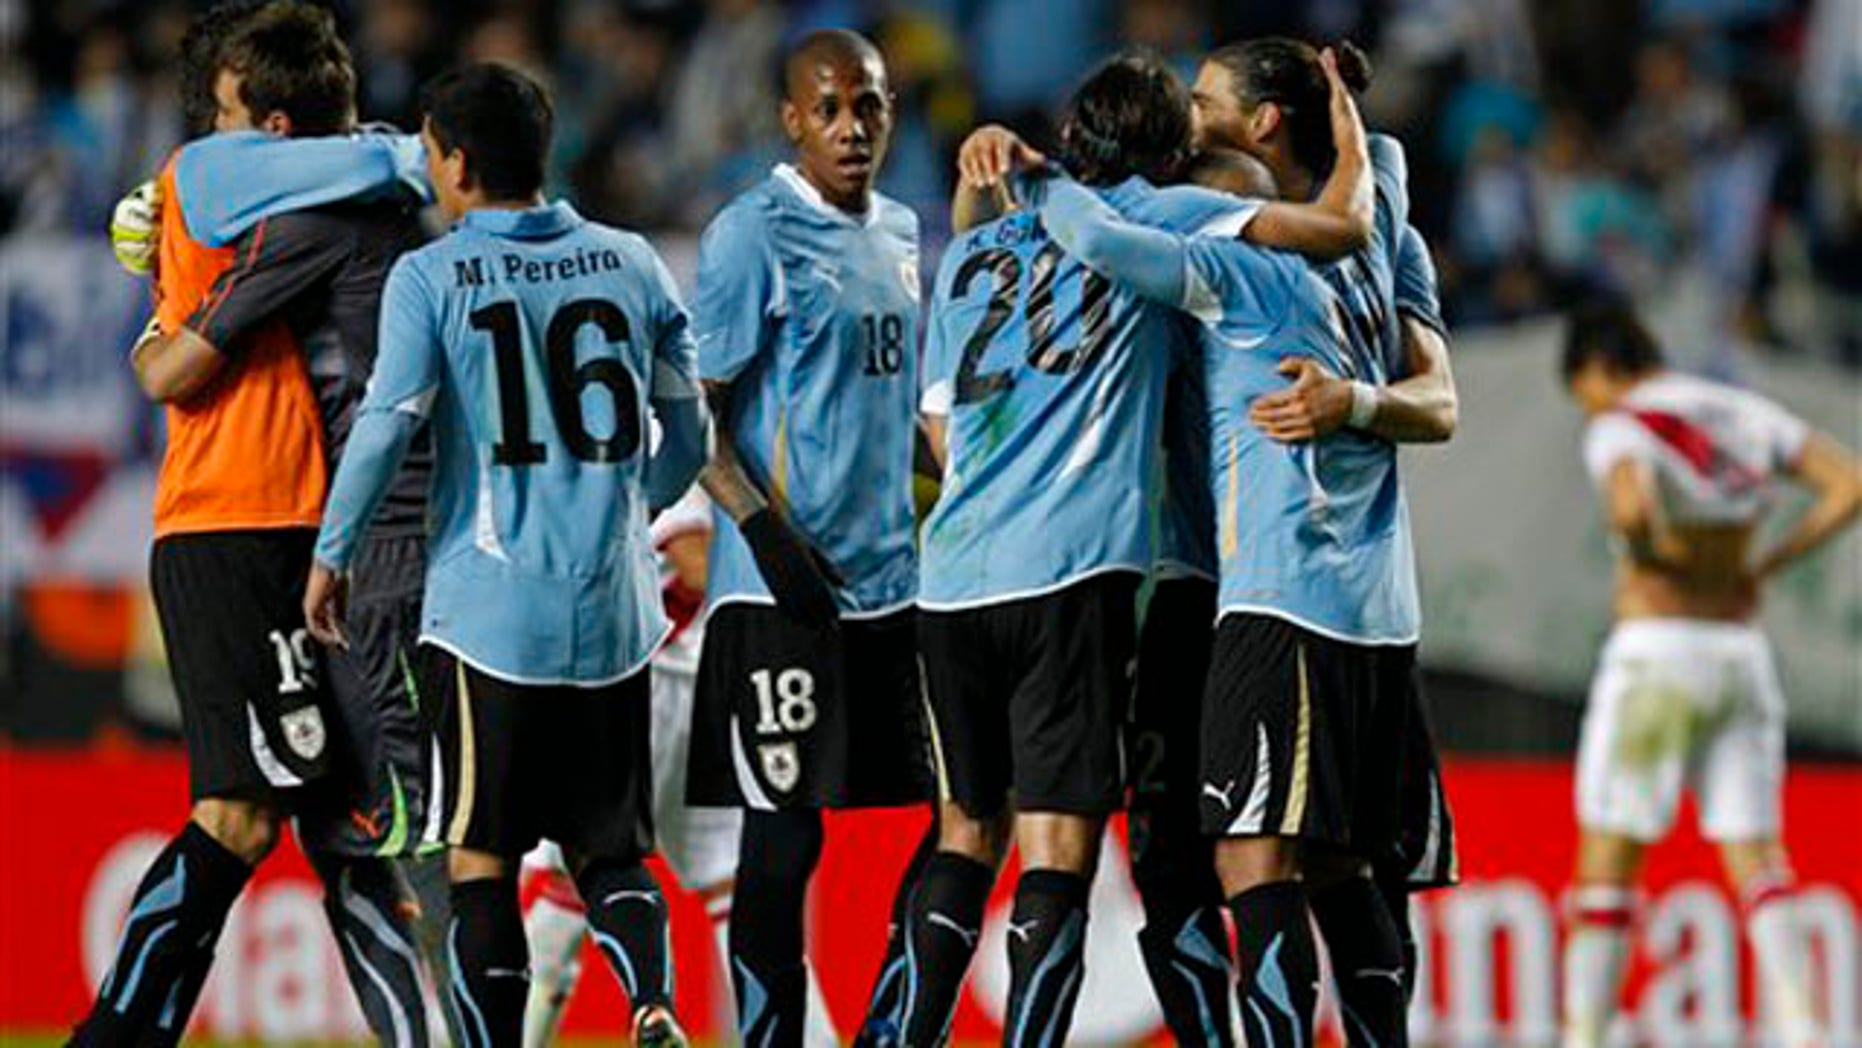 Uruguay's players celebrate at the end of a Copa America semifinal soccer match with Peru in La Plata, Argentina, Tuesday, July 19, 2011. Uruguay won the match 2-0 and advanced to the final. (AP Photo/Ricardo Mazalan)